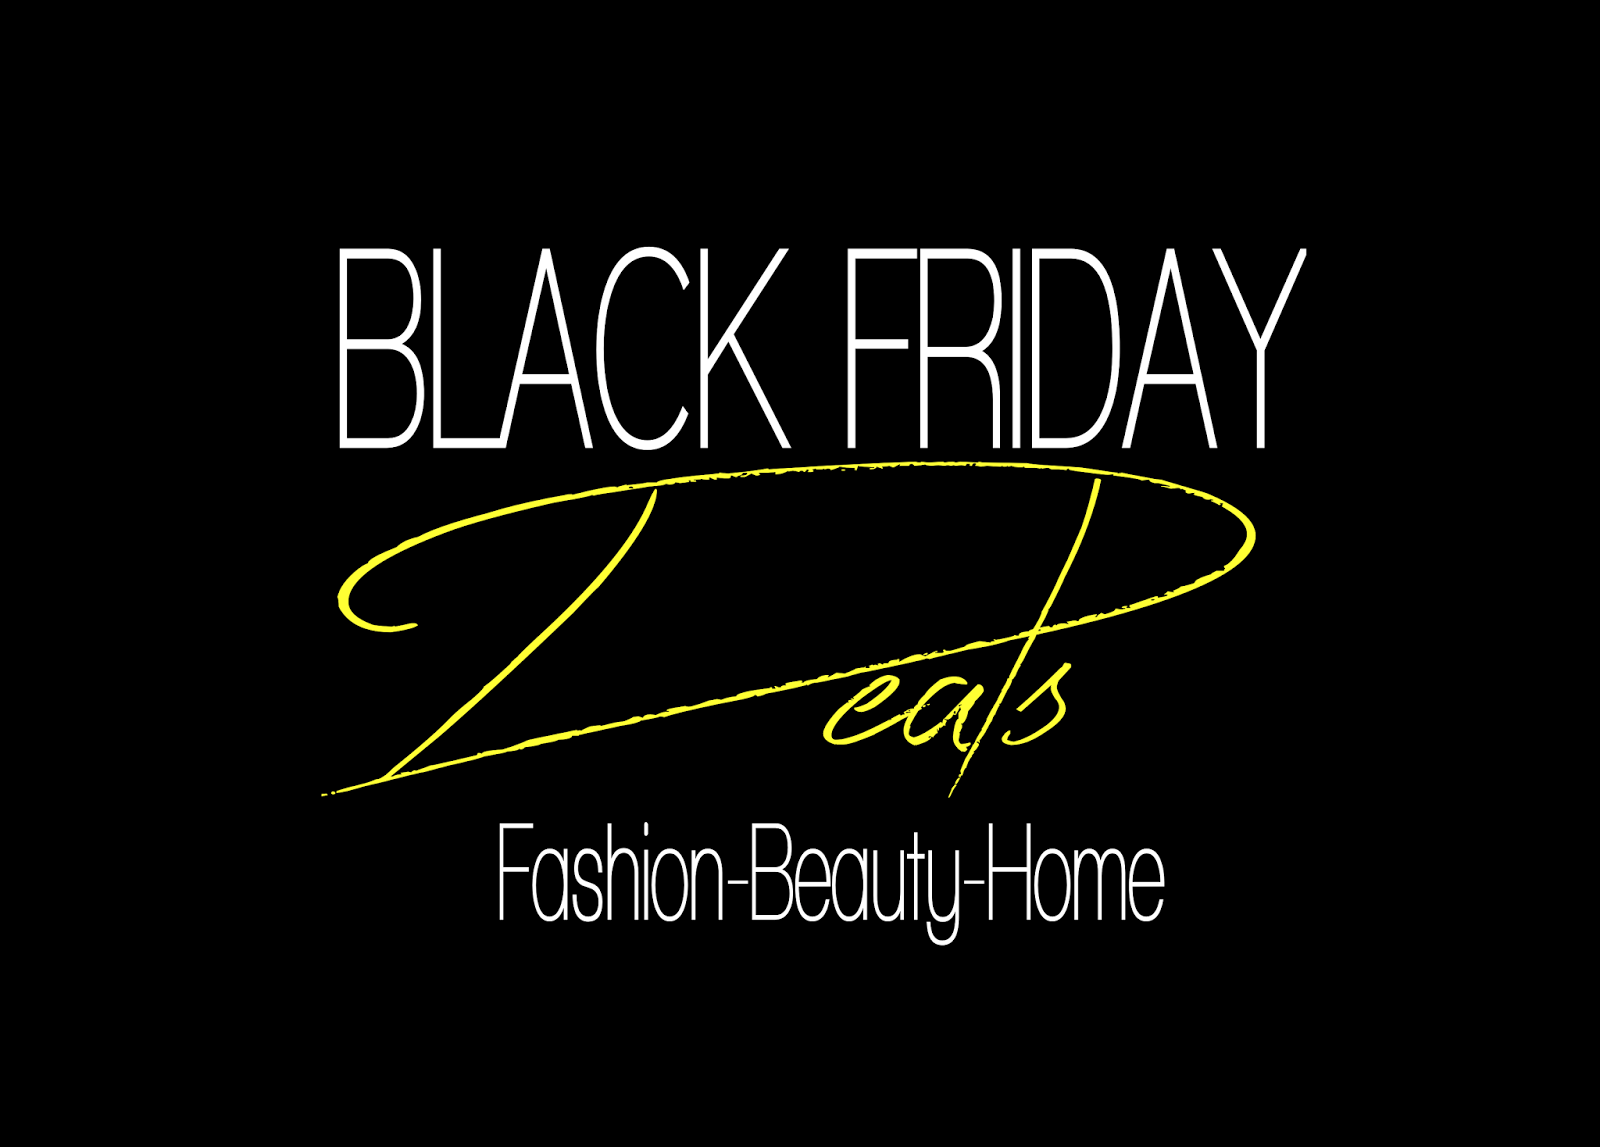 Black Friday Wochenende Black Friyays The Best Black Friday Deals Beauty Fashion Home